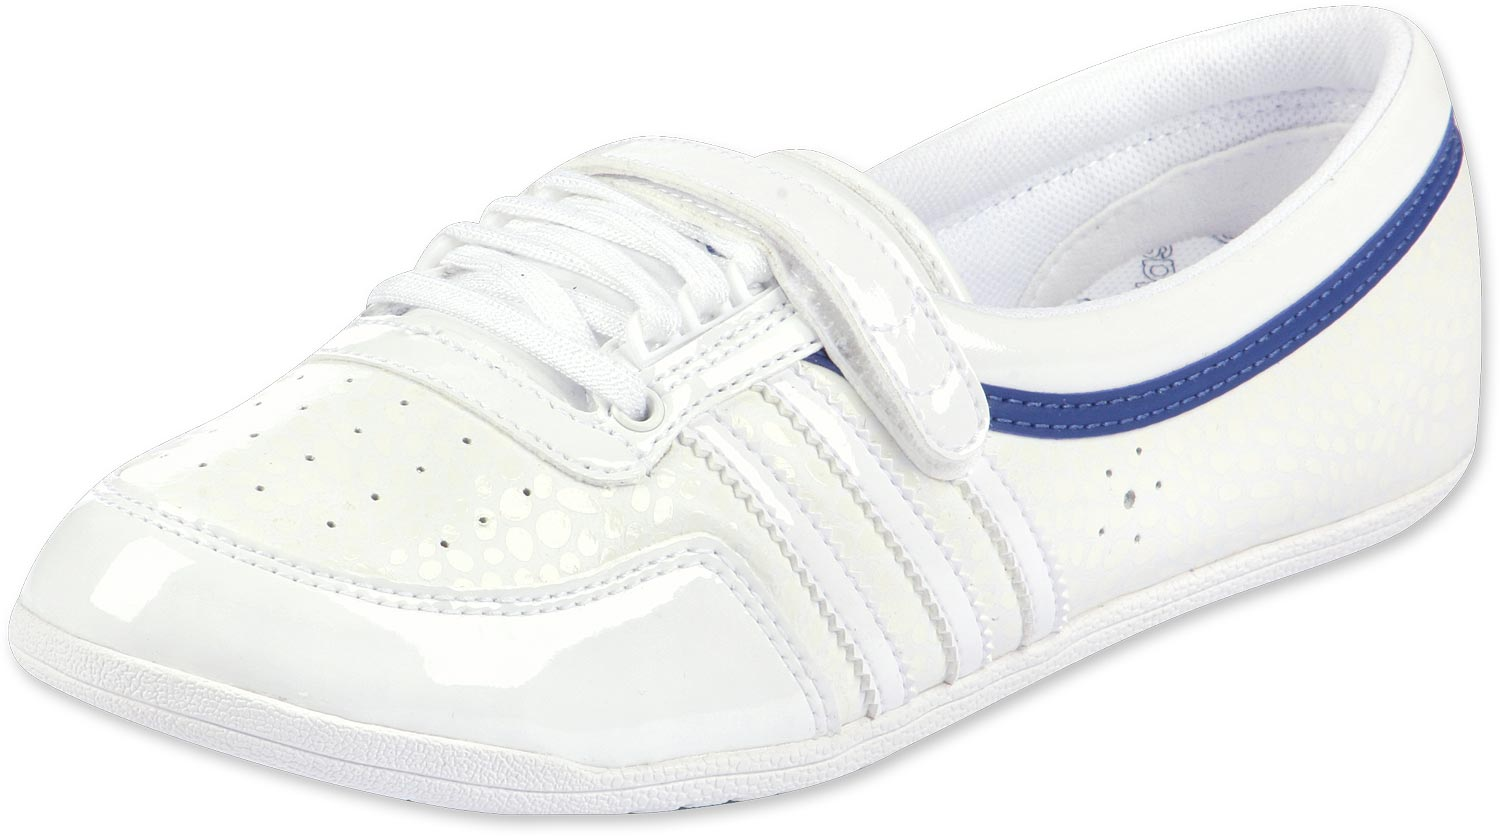 adidas adidas concord round w shoes white blue beige VASOONS